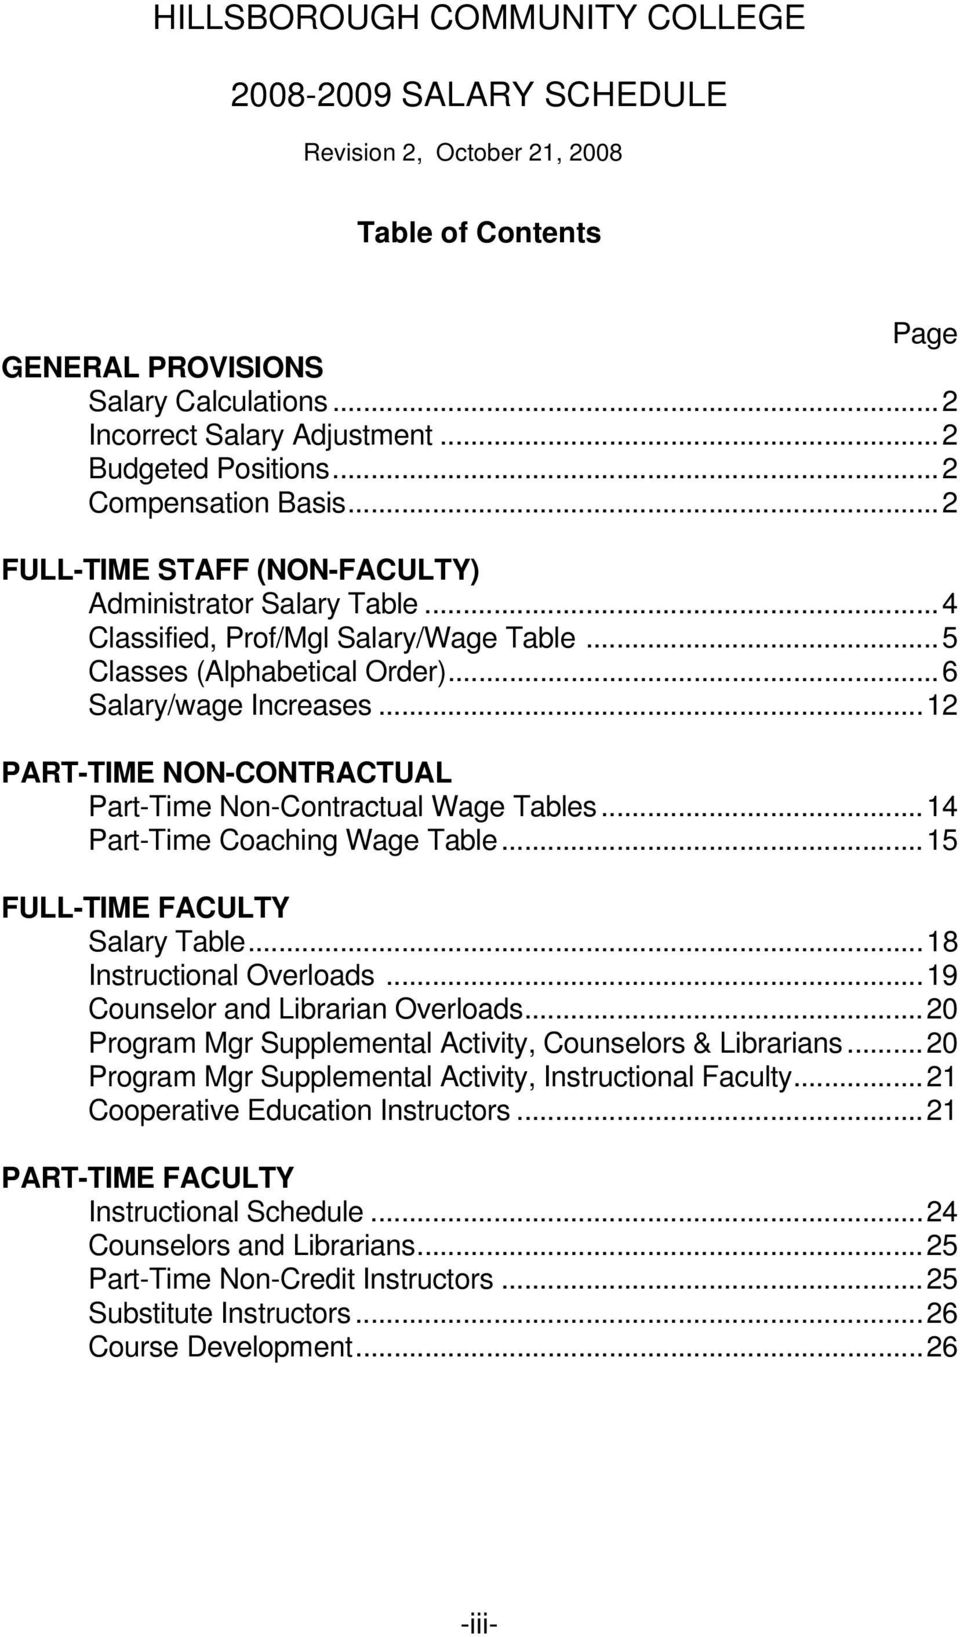 ..6 Salary/wage Increases...12 PART-TIME NON-CONTRACTUAL Part-Time Non-Contractual Wage Tables...14 Part-Time Coaching Wage Table...15 FULL-TIME FACULTY Salary Table...18 Instructional Overloads.